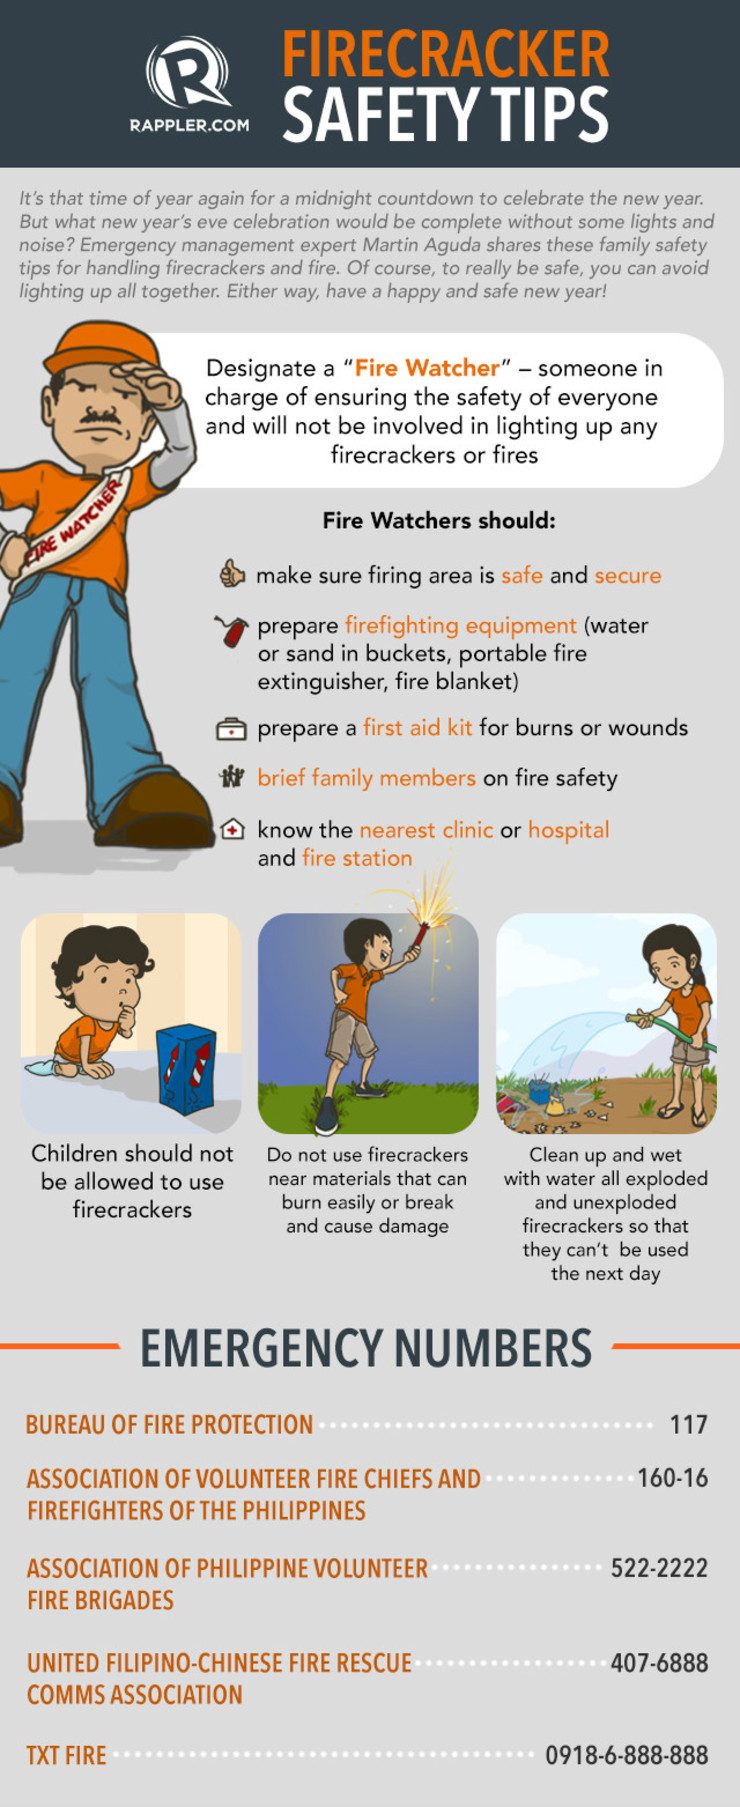 How to handle firecrackers safely this new year's eve